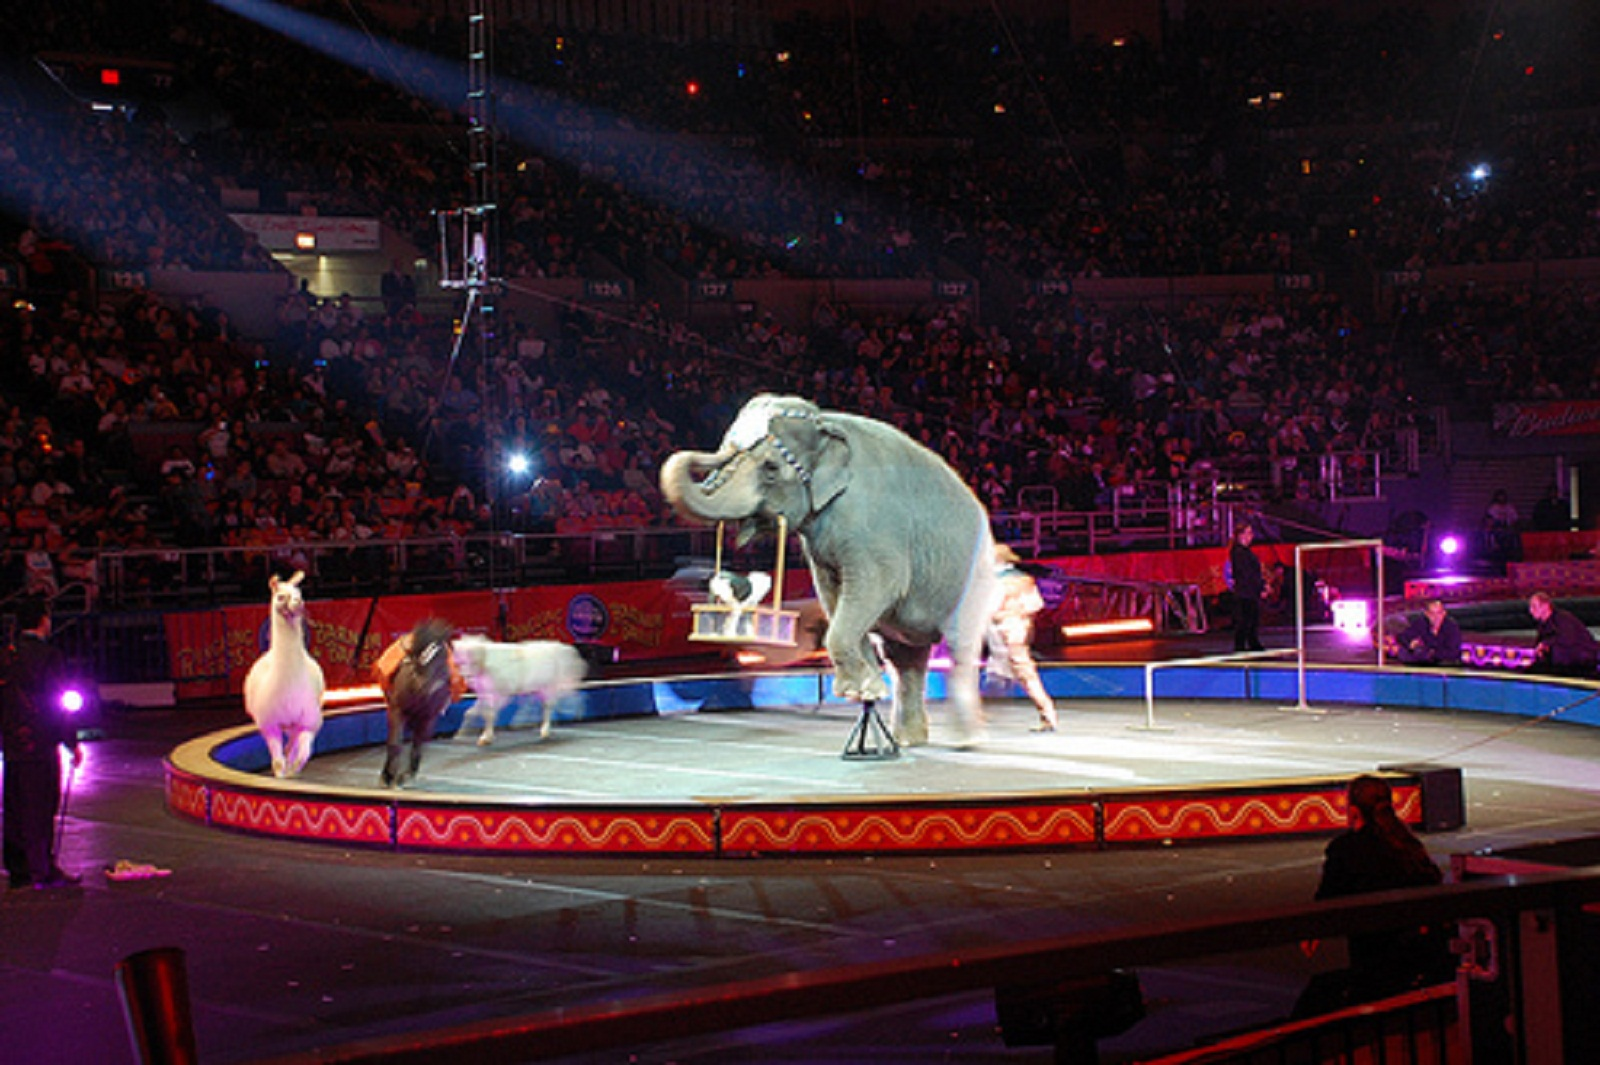 If Ringling Bros. Cares About Animals, Here are 4 Things They Should Do Next